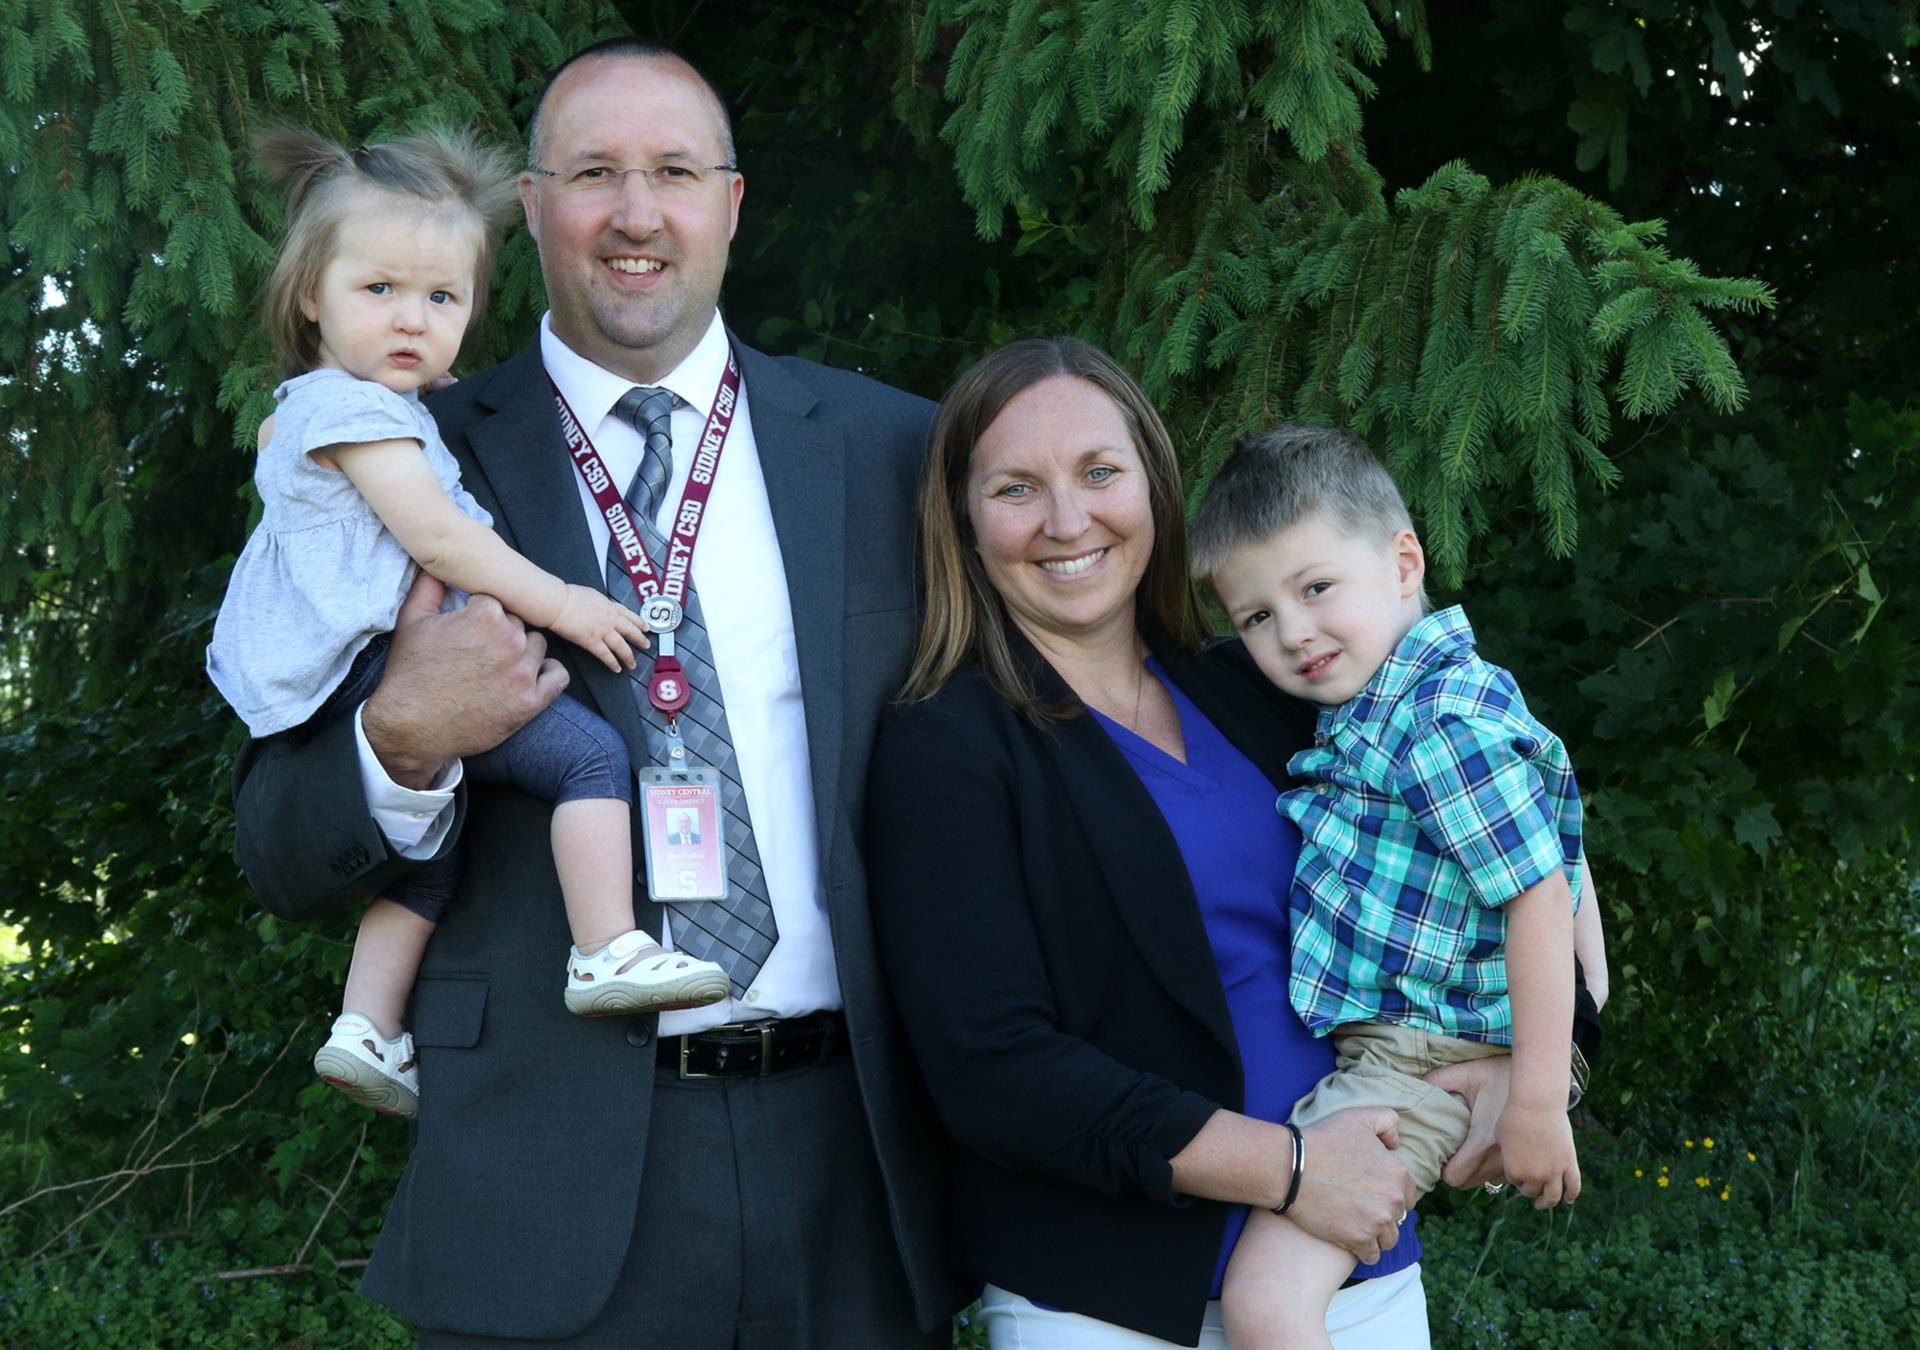 Sidney CSD Superintendent Eben Bullock and Family